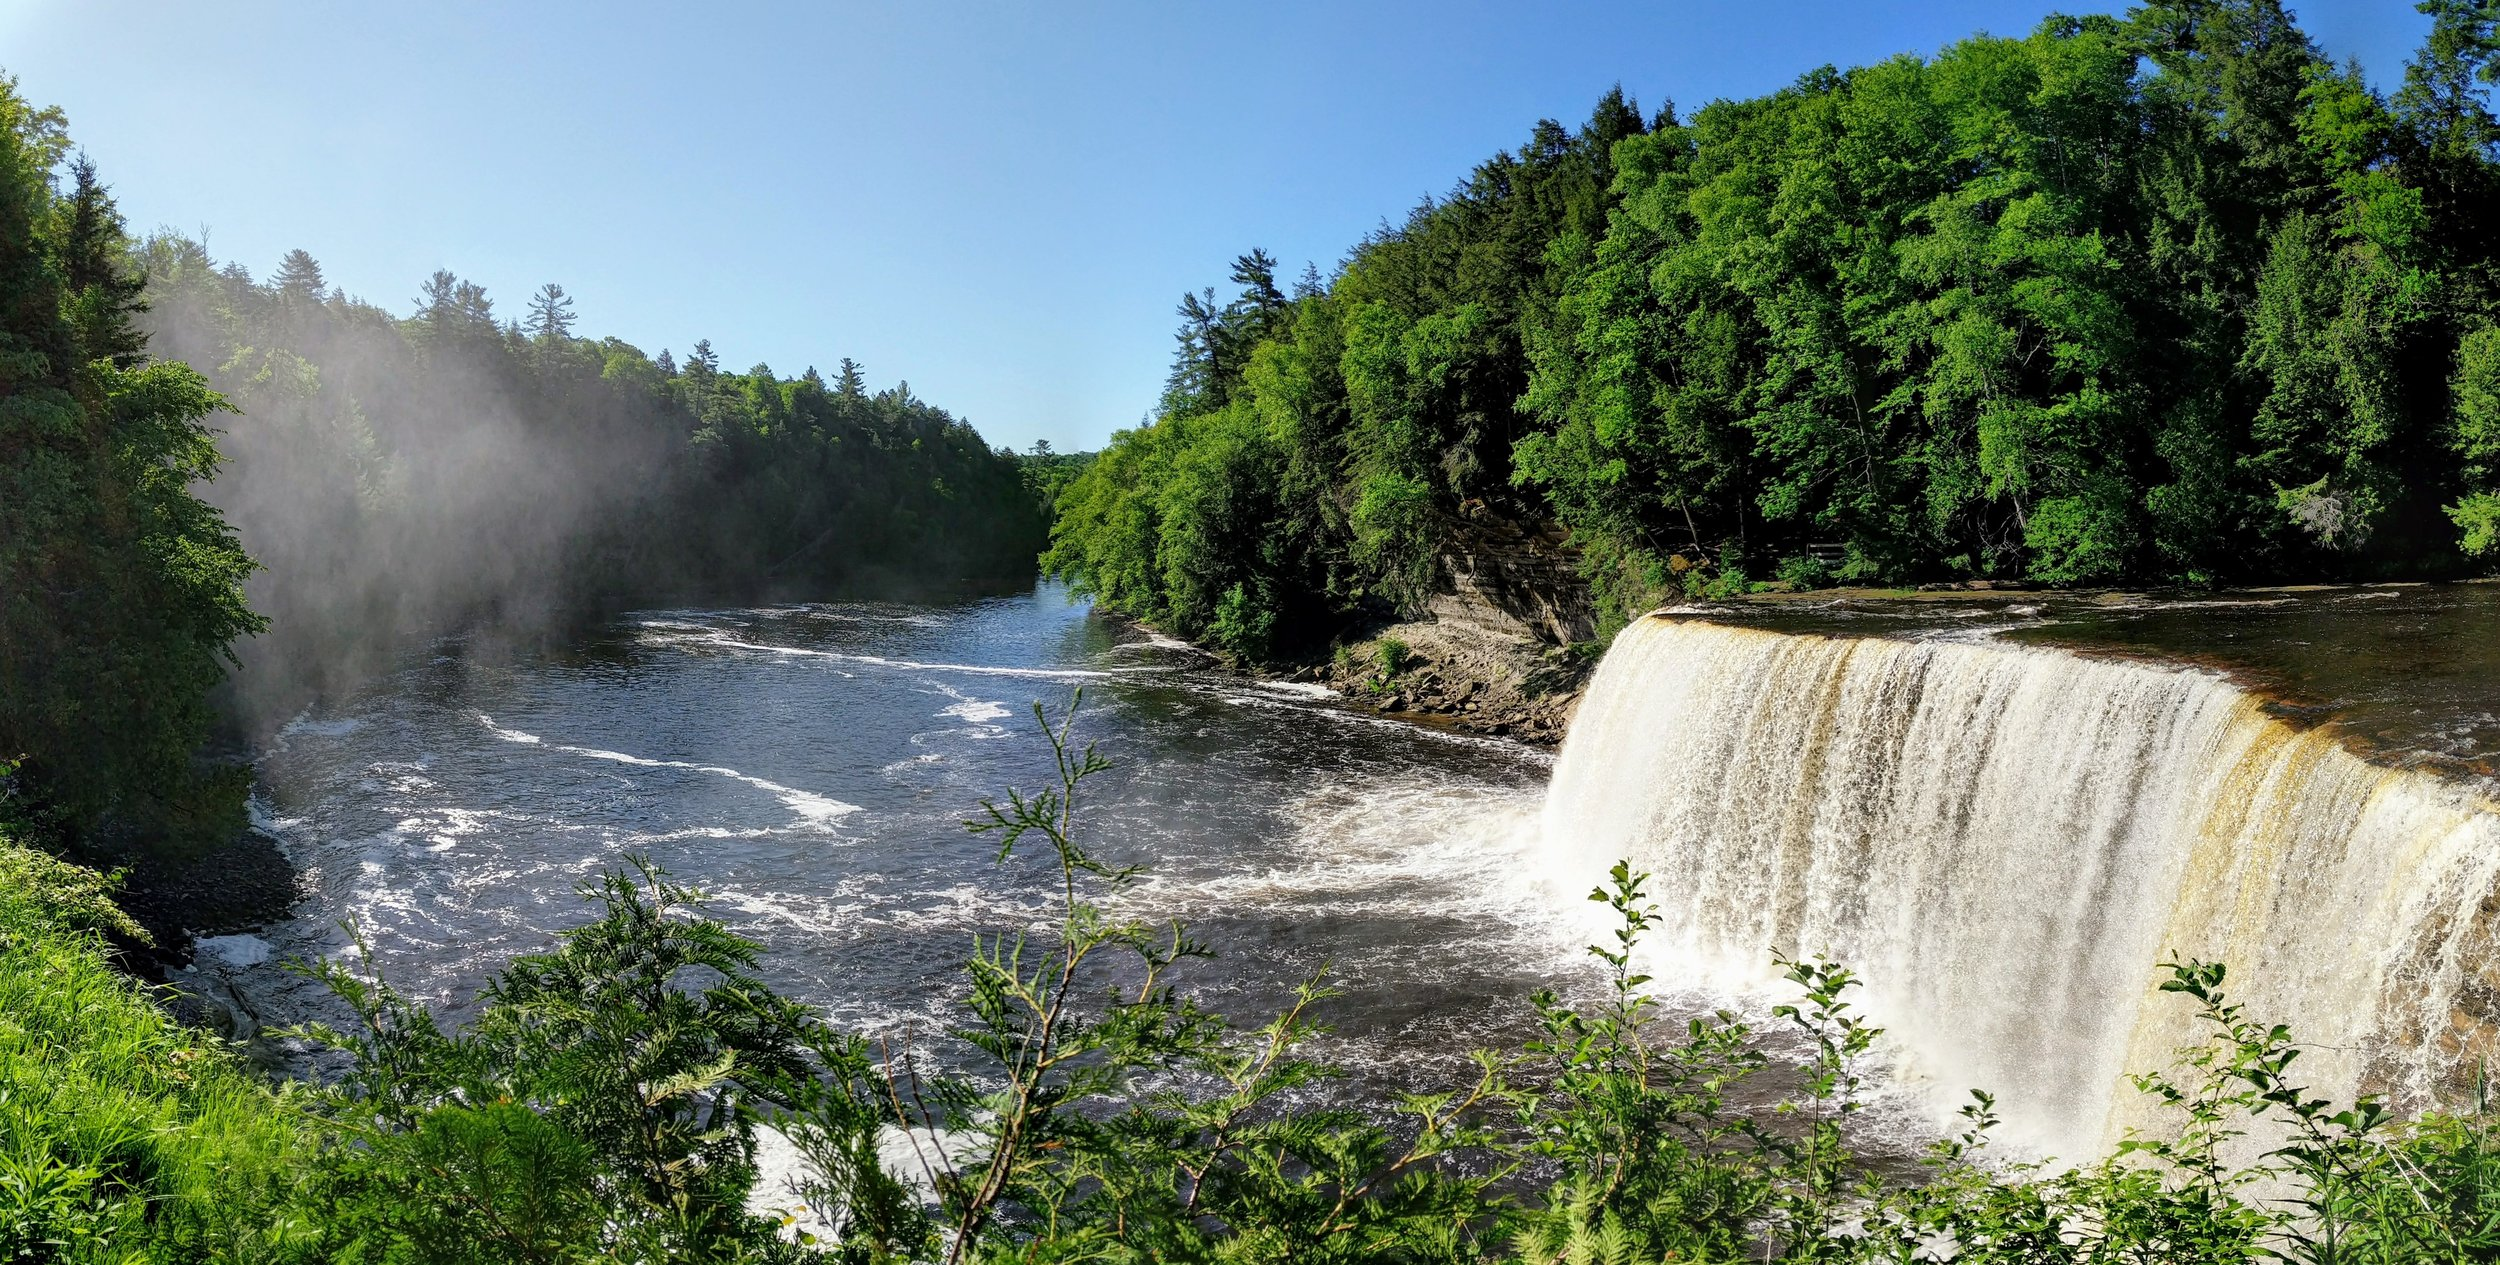 View of the Upper Falls and river from the viewing platform.